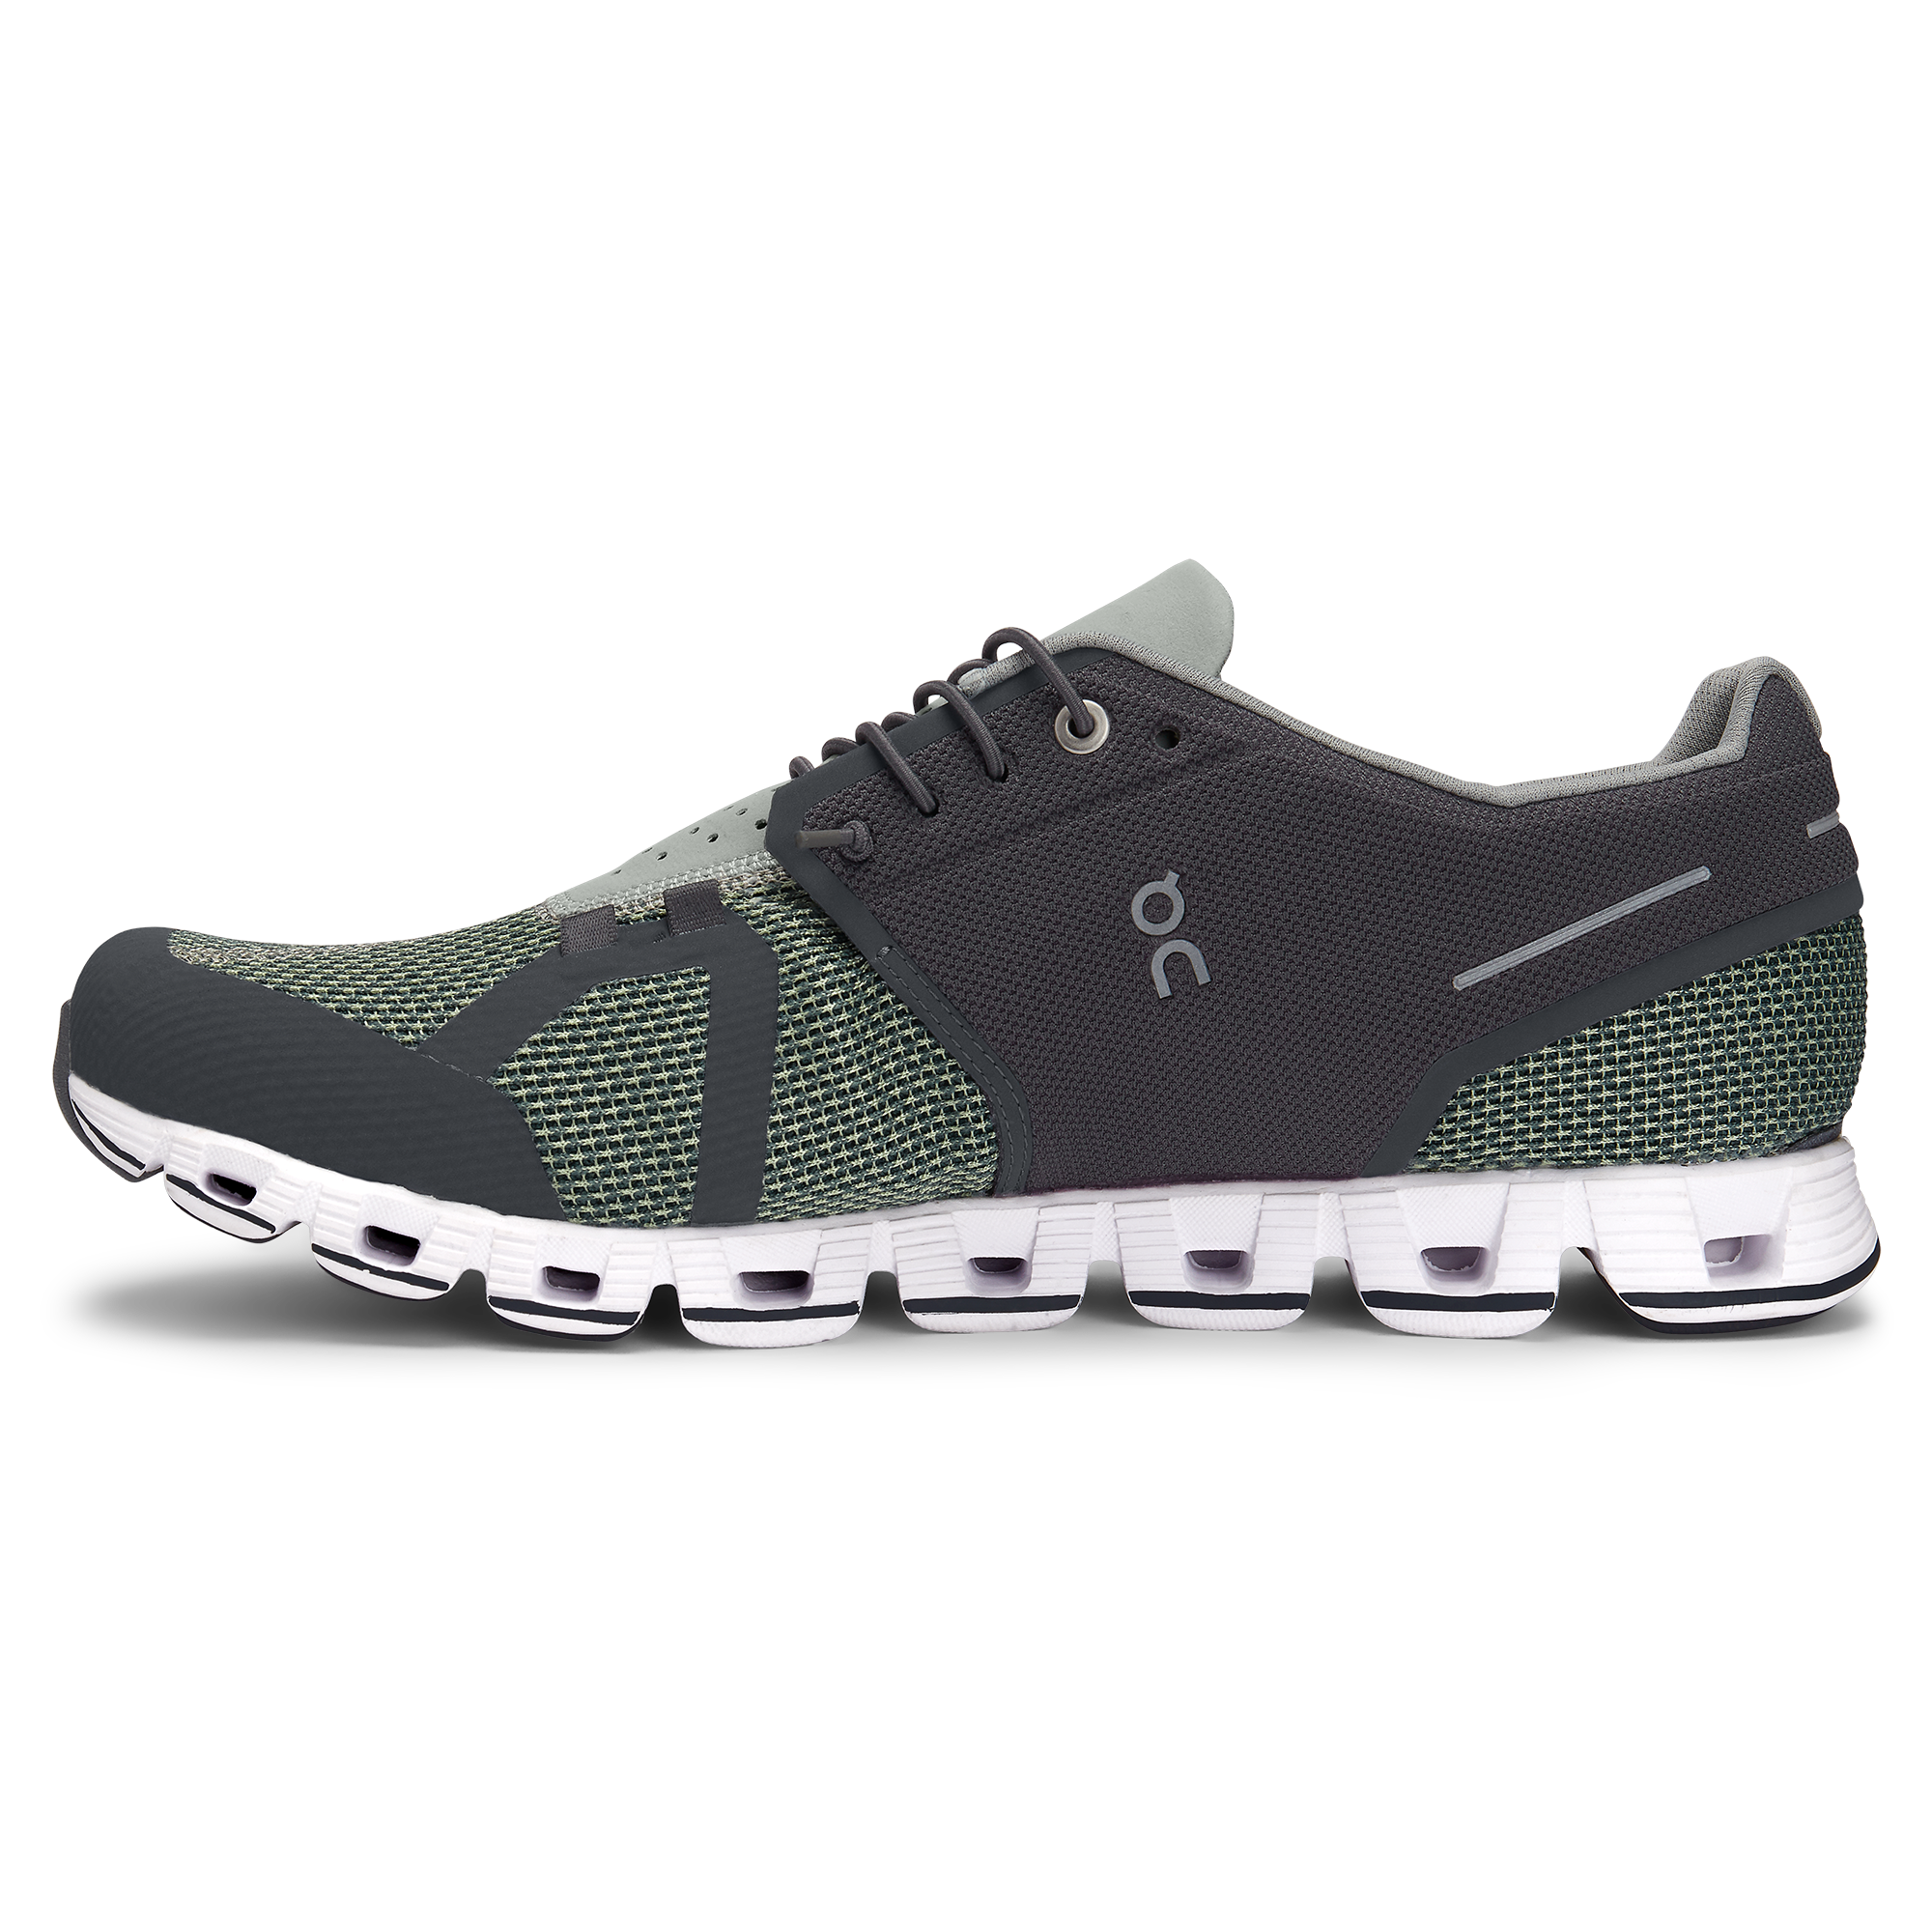 Cloud - the lightweight shoe for